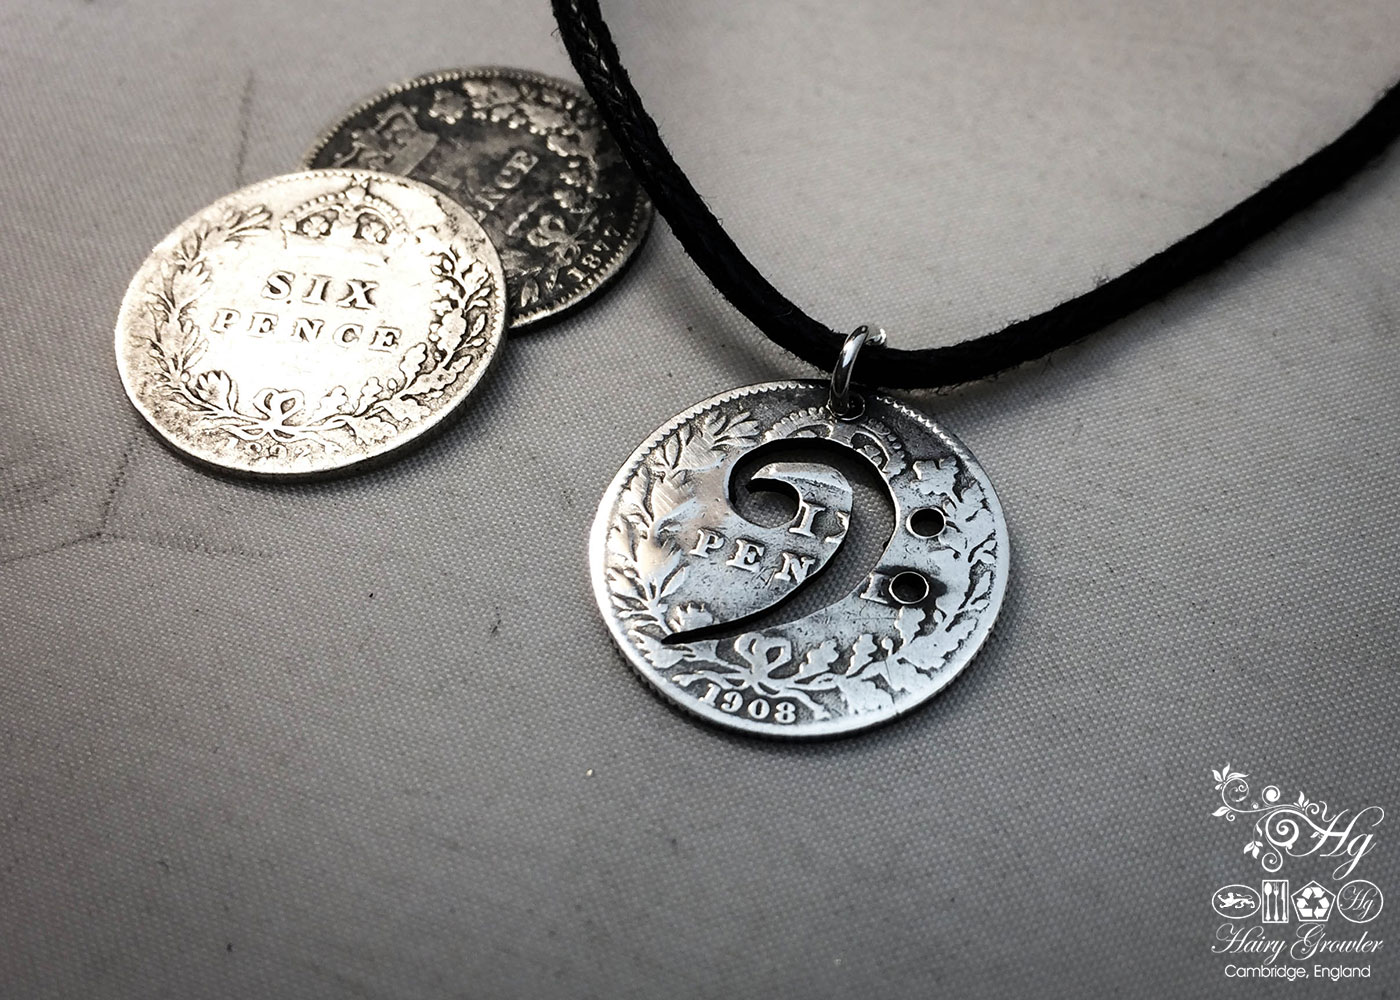 Bass Clef necklace - handmade and recycled using silver sixpence